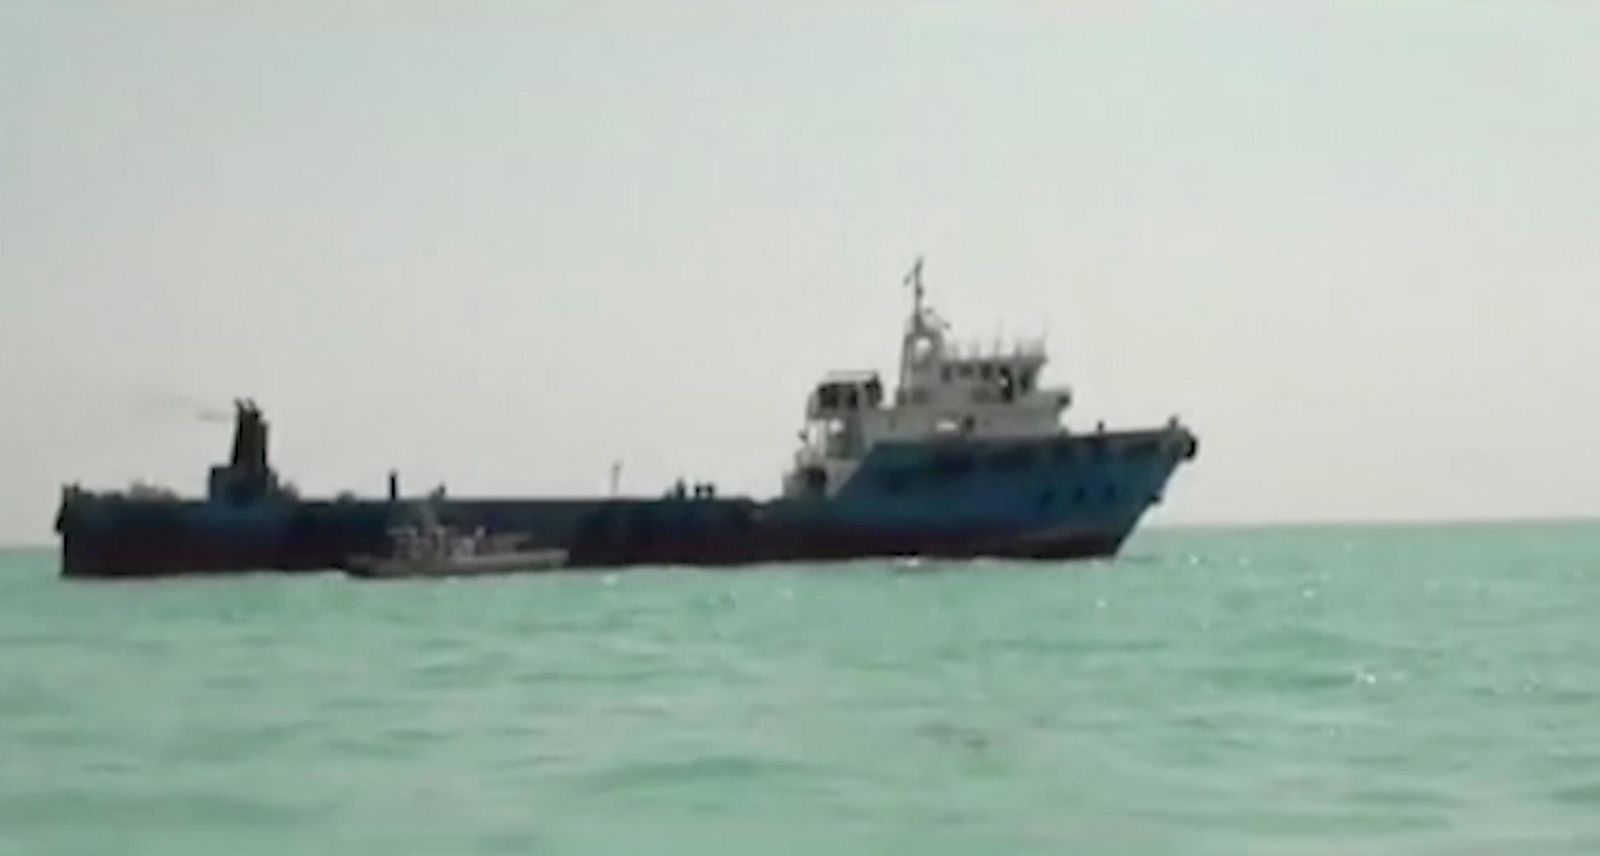 This undated image made from a video provided by the IRGC/IRIB shows a ship in the Persian Gulf. Iranian forces seized the ship, which it suspected of carrying smuggled fuel, state media reported Sunday, Aug. 4, 2019. (IRGC/IRIB via AP)